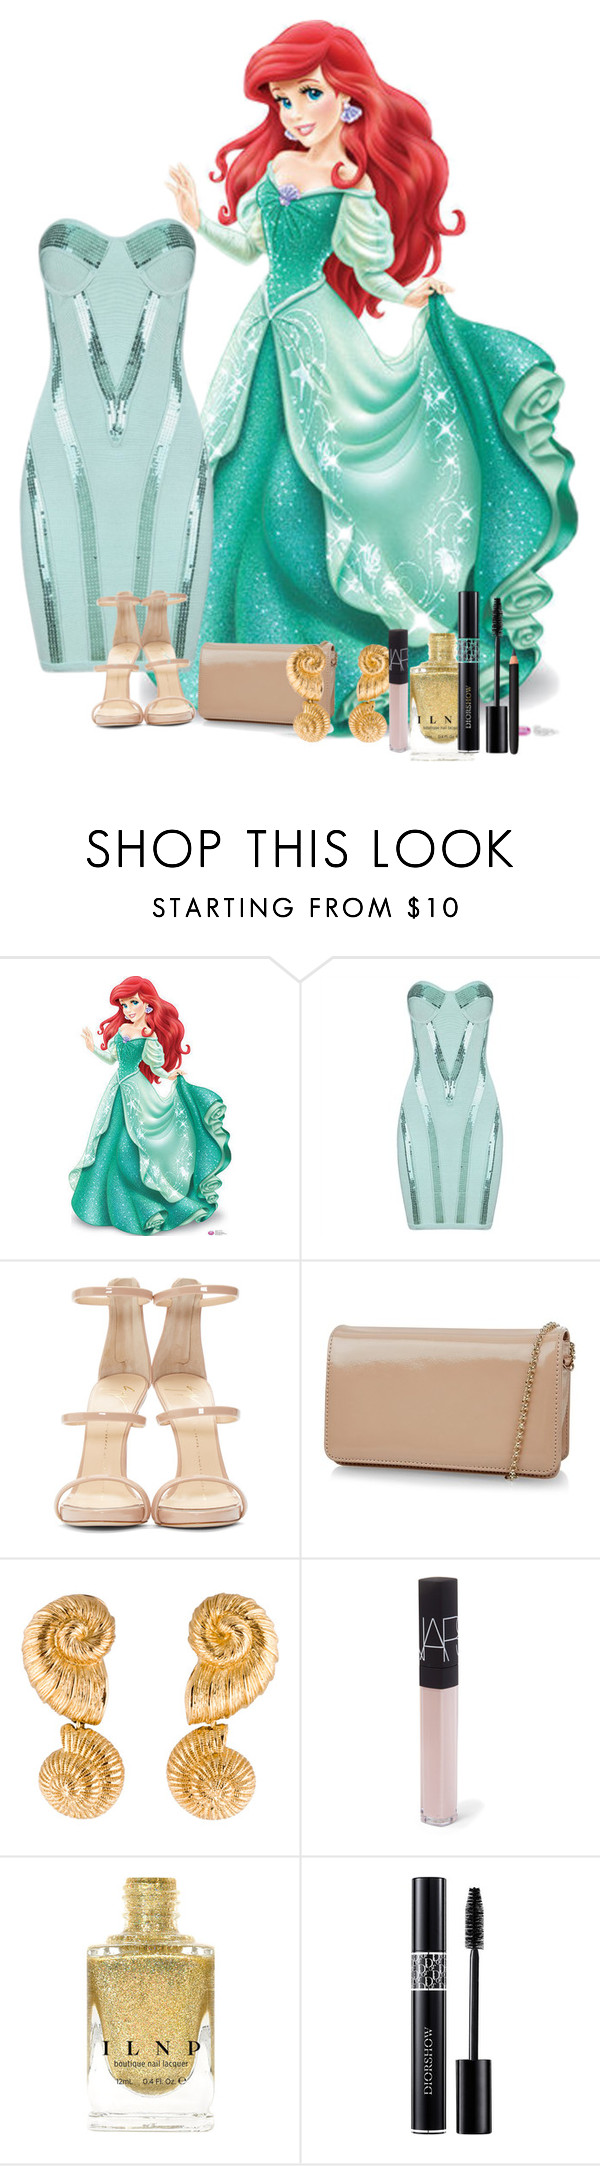 """Ariel Formal"" by xxmonnyxx on Polyvore featuring Giuseppe Zanotti, Hobbs, Christian Dior, NARS Cosmetics and INIKA"